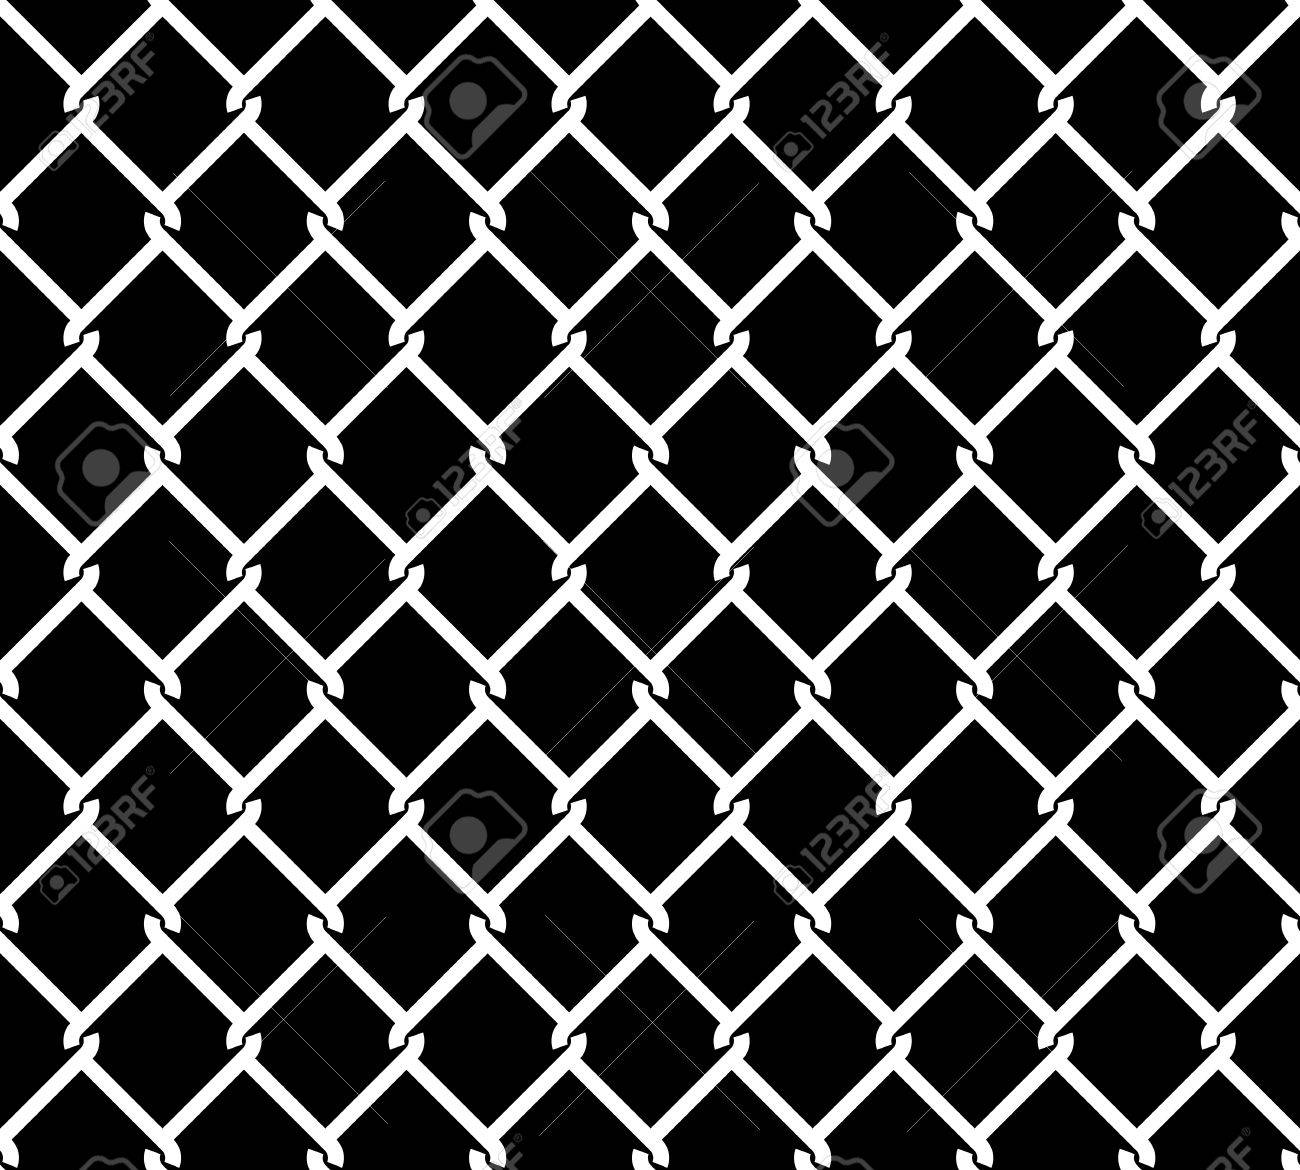 Wired Metallic Fence Seamless Pattern Overlay. Steel Wire Mesh ...